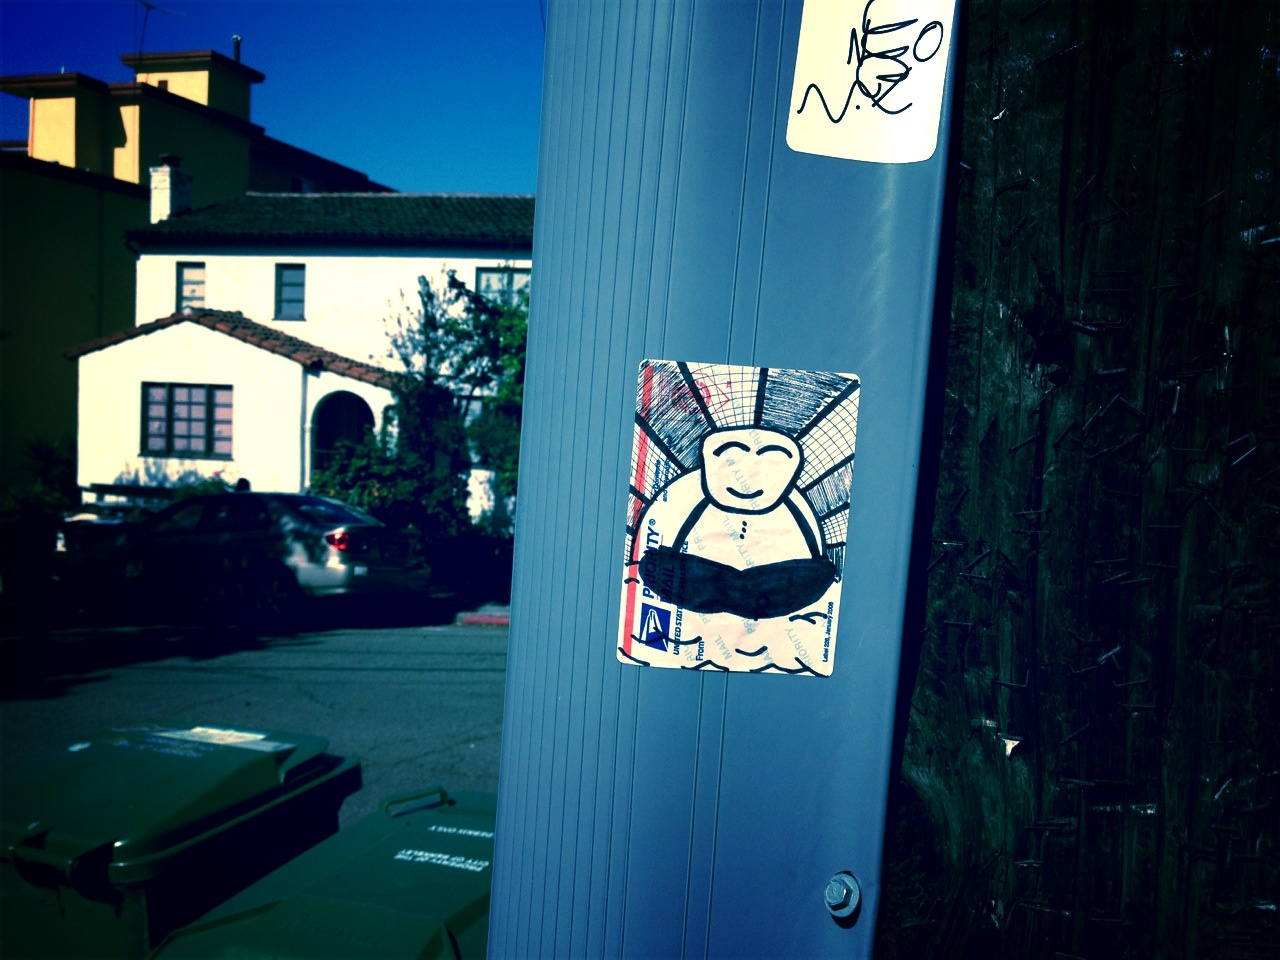 Random Buddha sticker on a telephone pole in Berkeley.